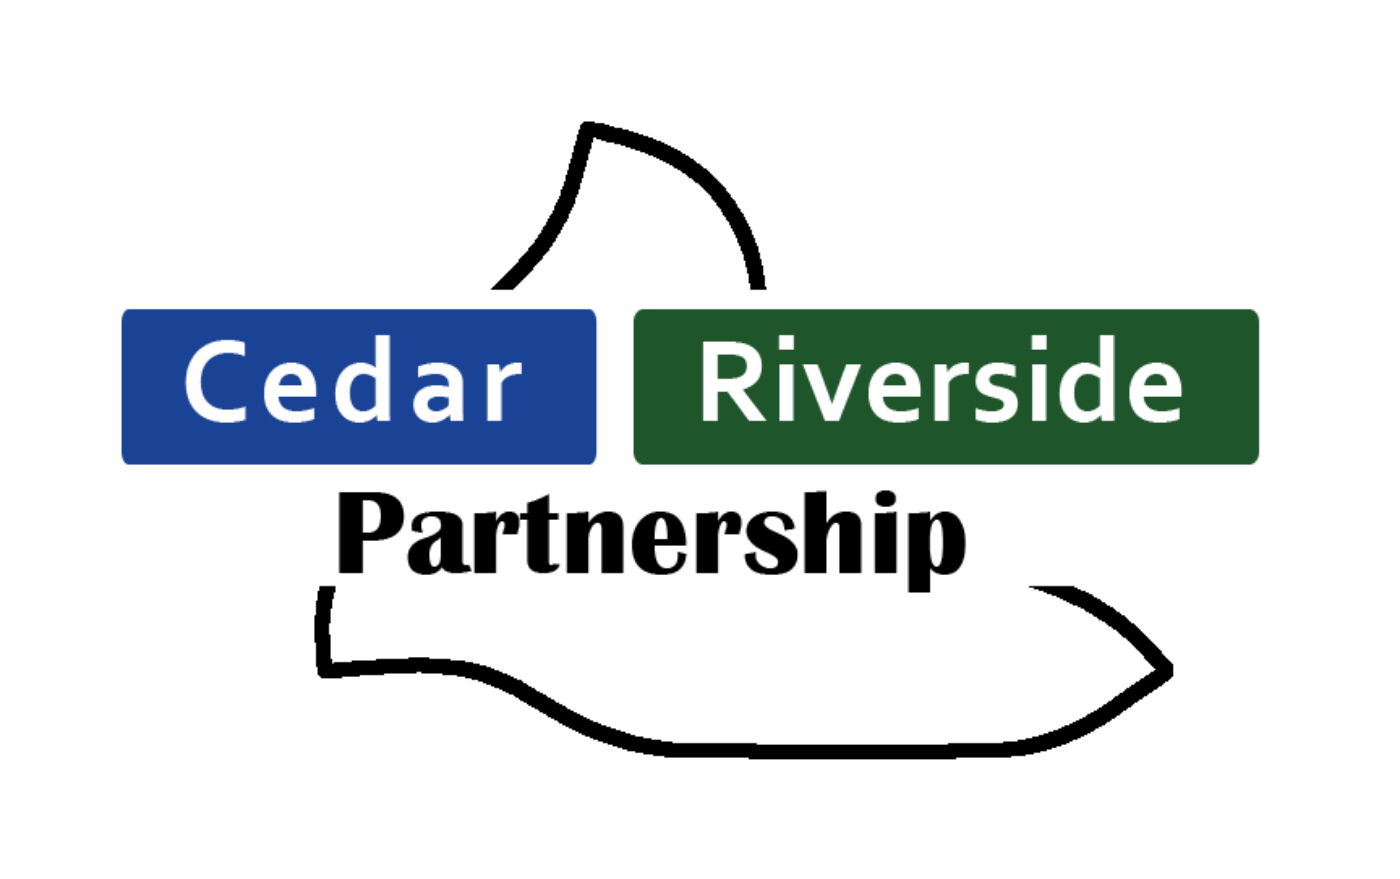 Cedar Riverside Partnership